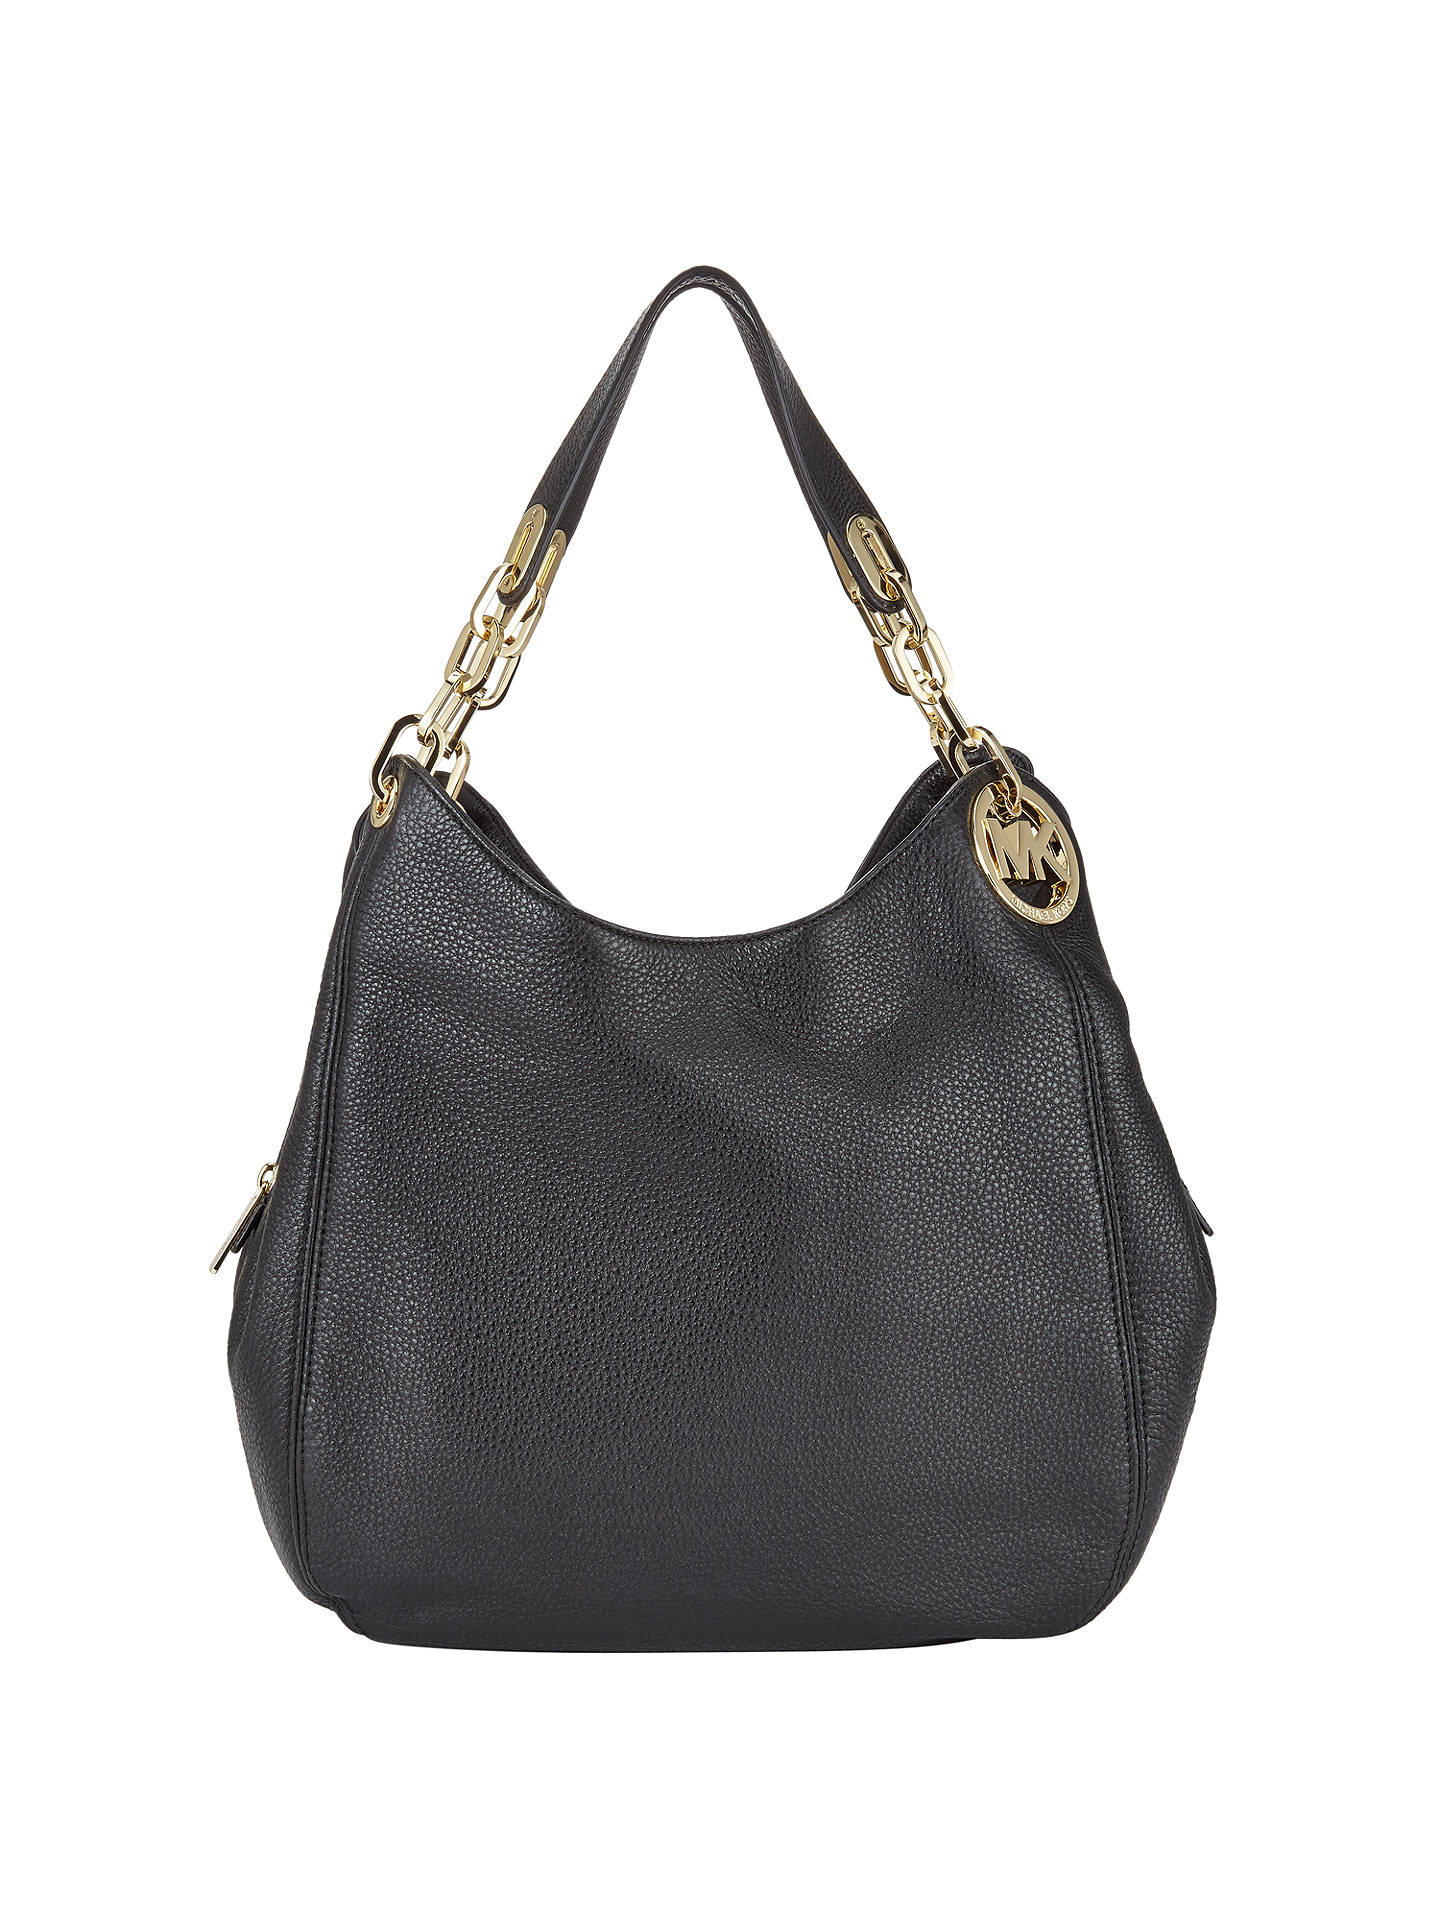 fbf109e9f029 MICHAEL Michael Kors Fulton Large Leather Shoulder Tote Bag at John ...